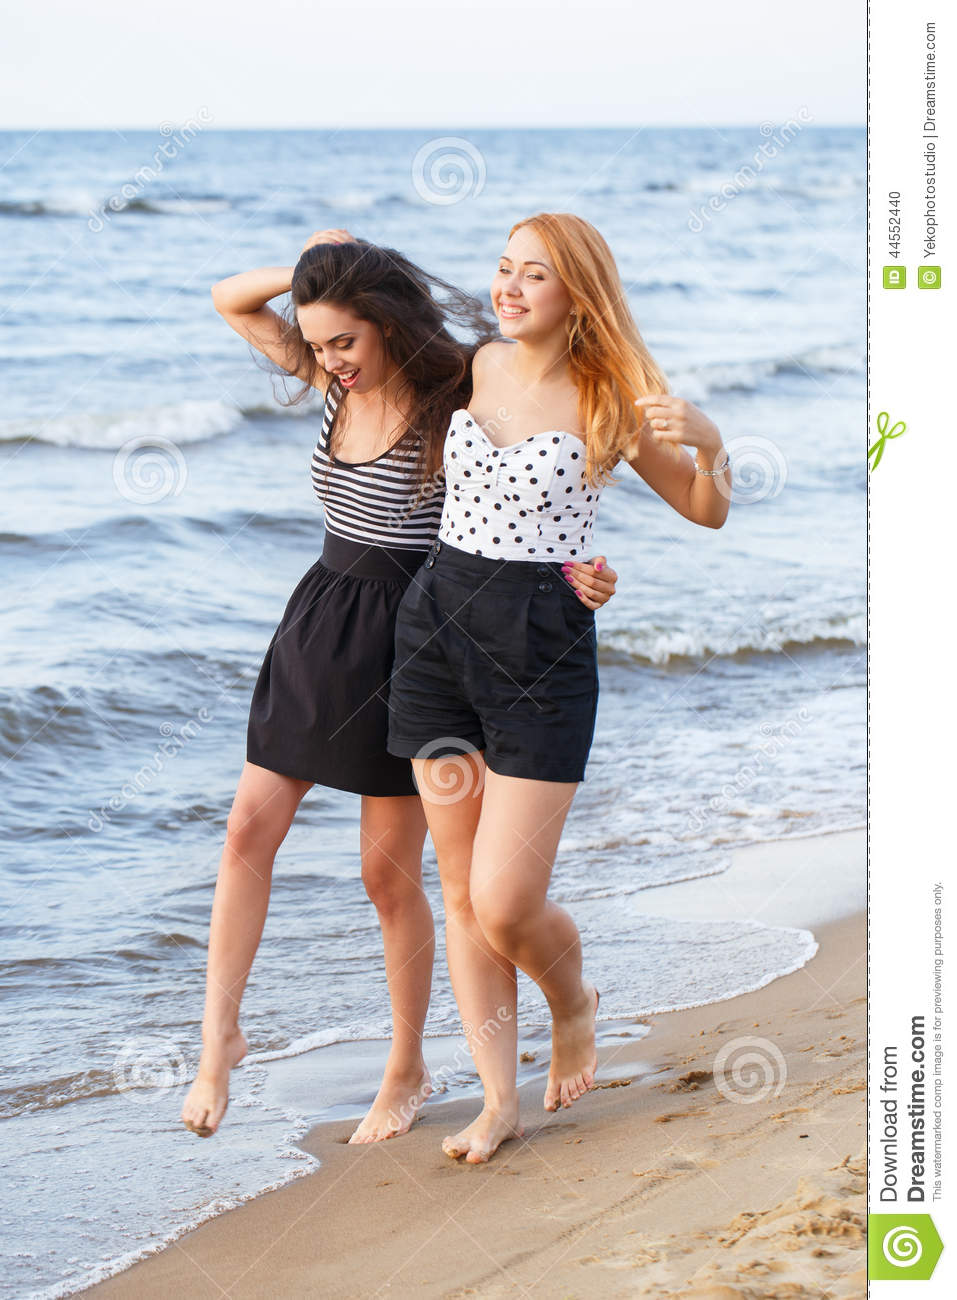 Best Friends On The Beach Stock Photo - Image: 44552440